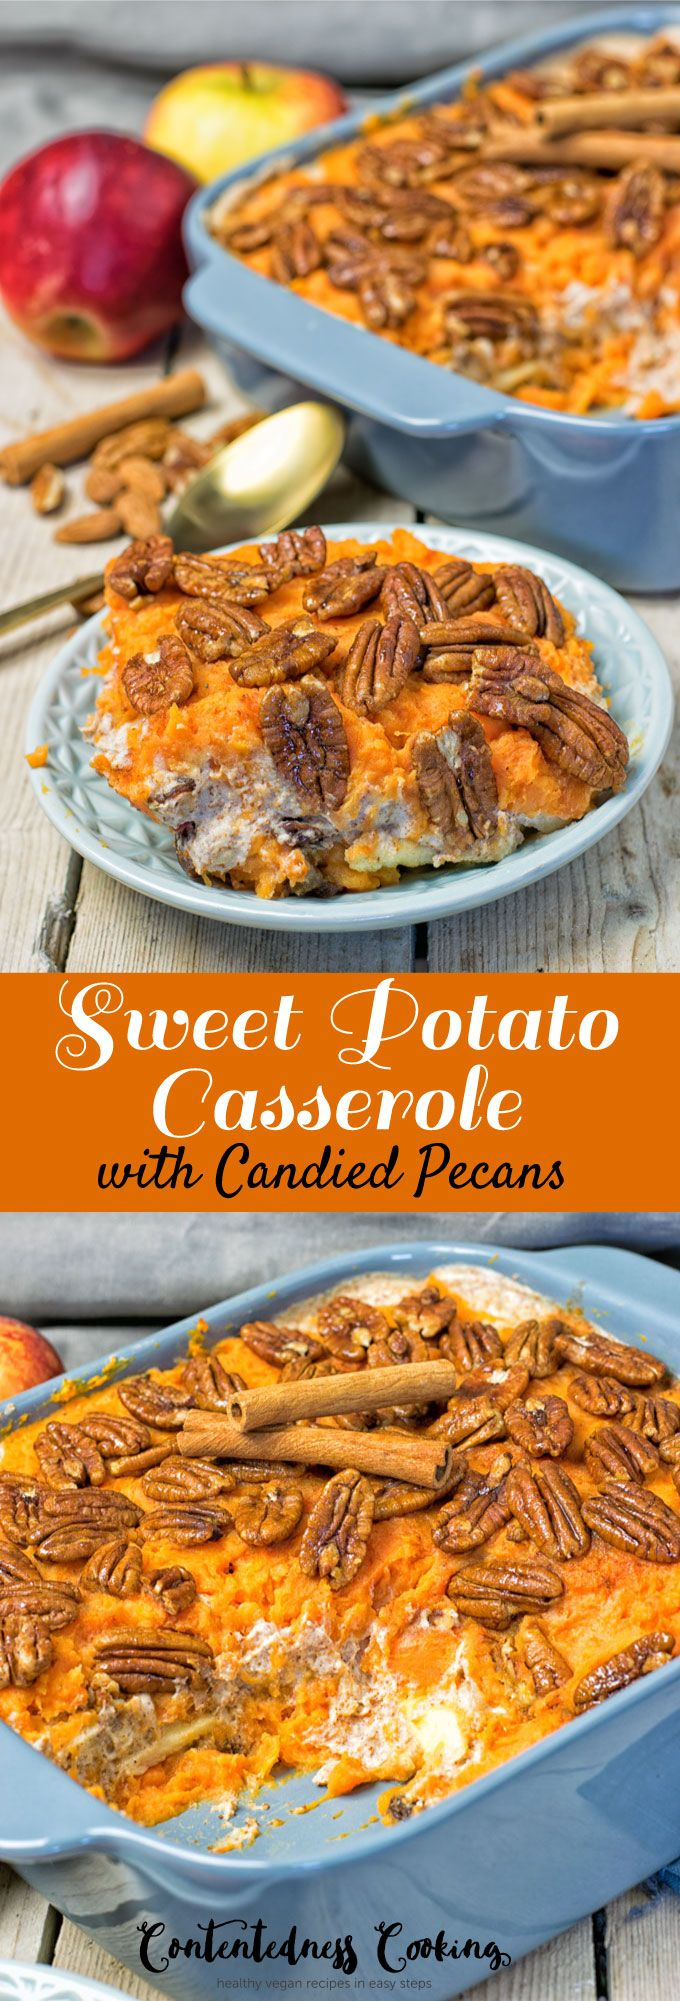 Sweet Potato Casserole | #vegan #clutenfree #contentednesscooking